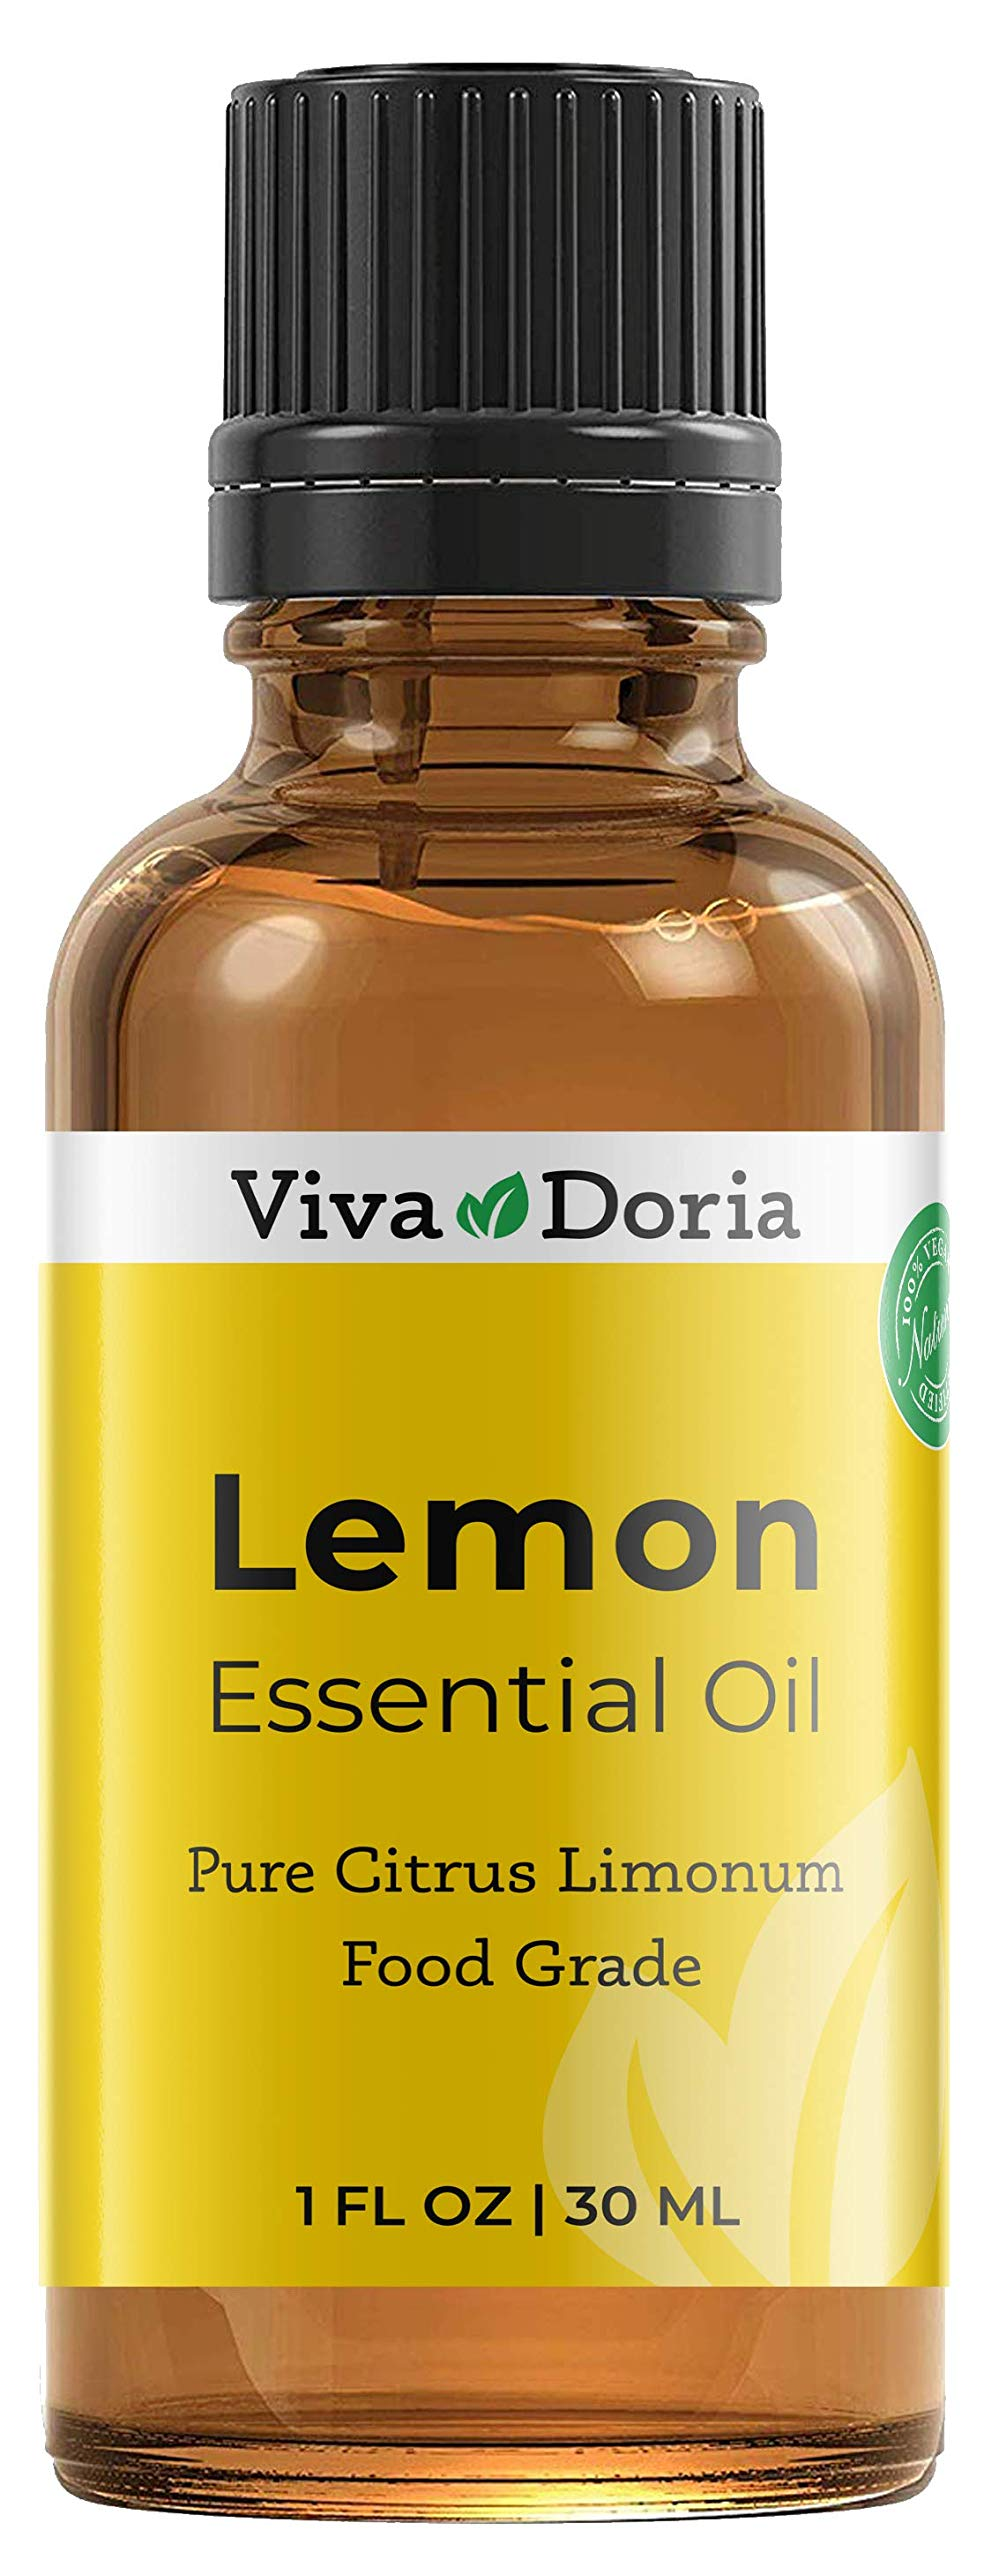 Viva Doria 100% Pure Lemon Essential Oil, Undiluted, Food Grade, High Quality Southwest - USA Lemon Oil, 30 mL (1 Fl Oz)